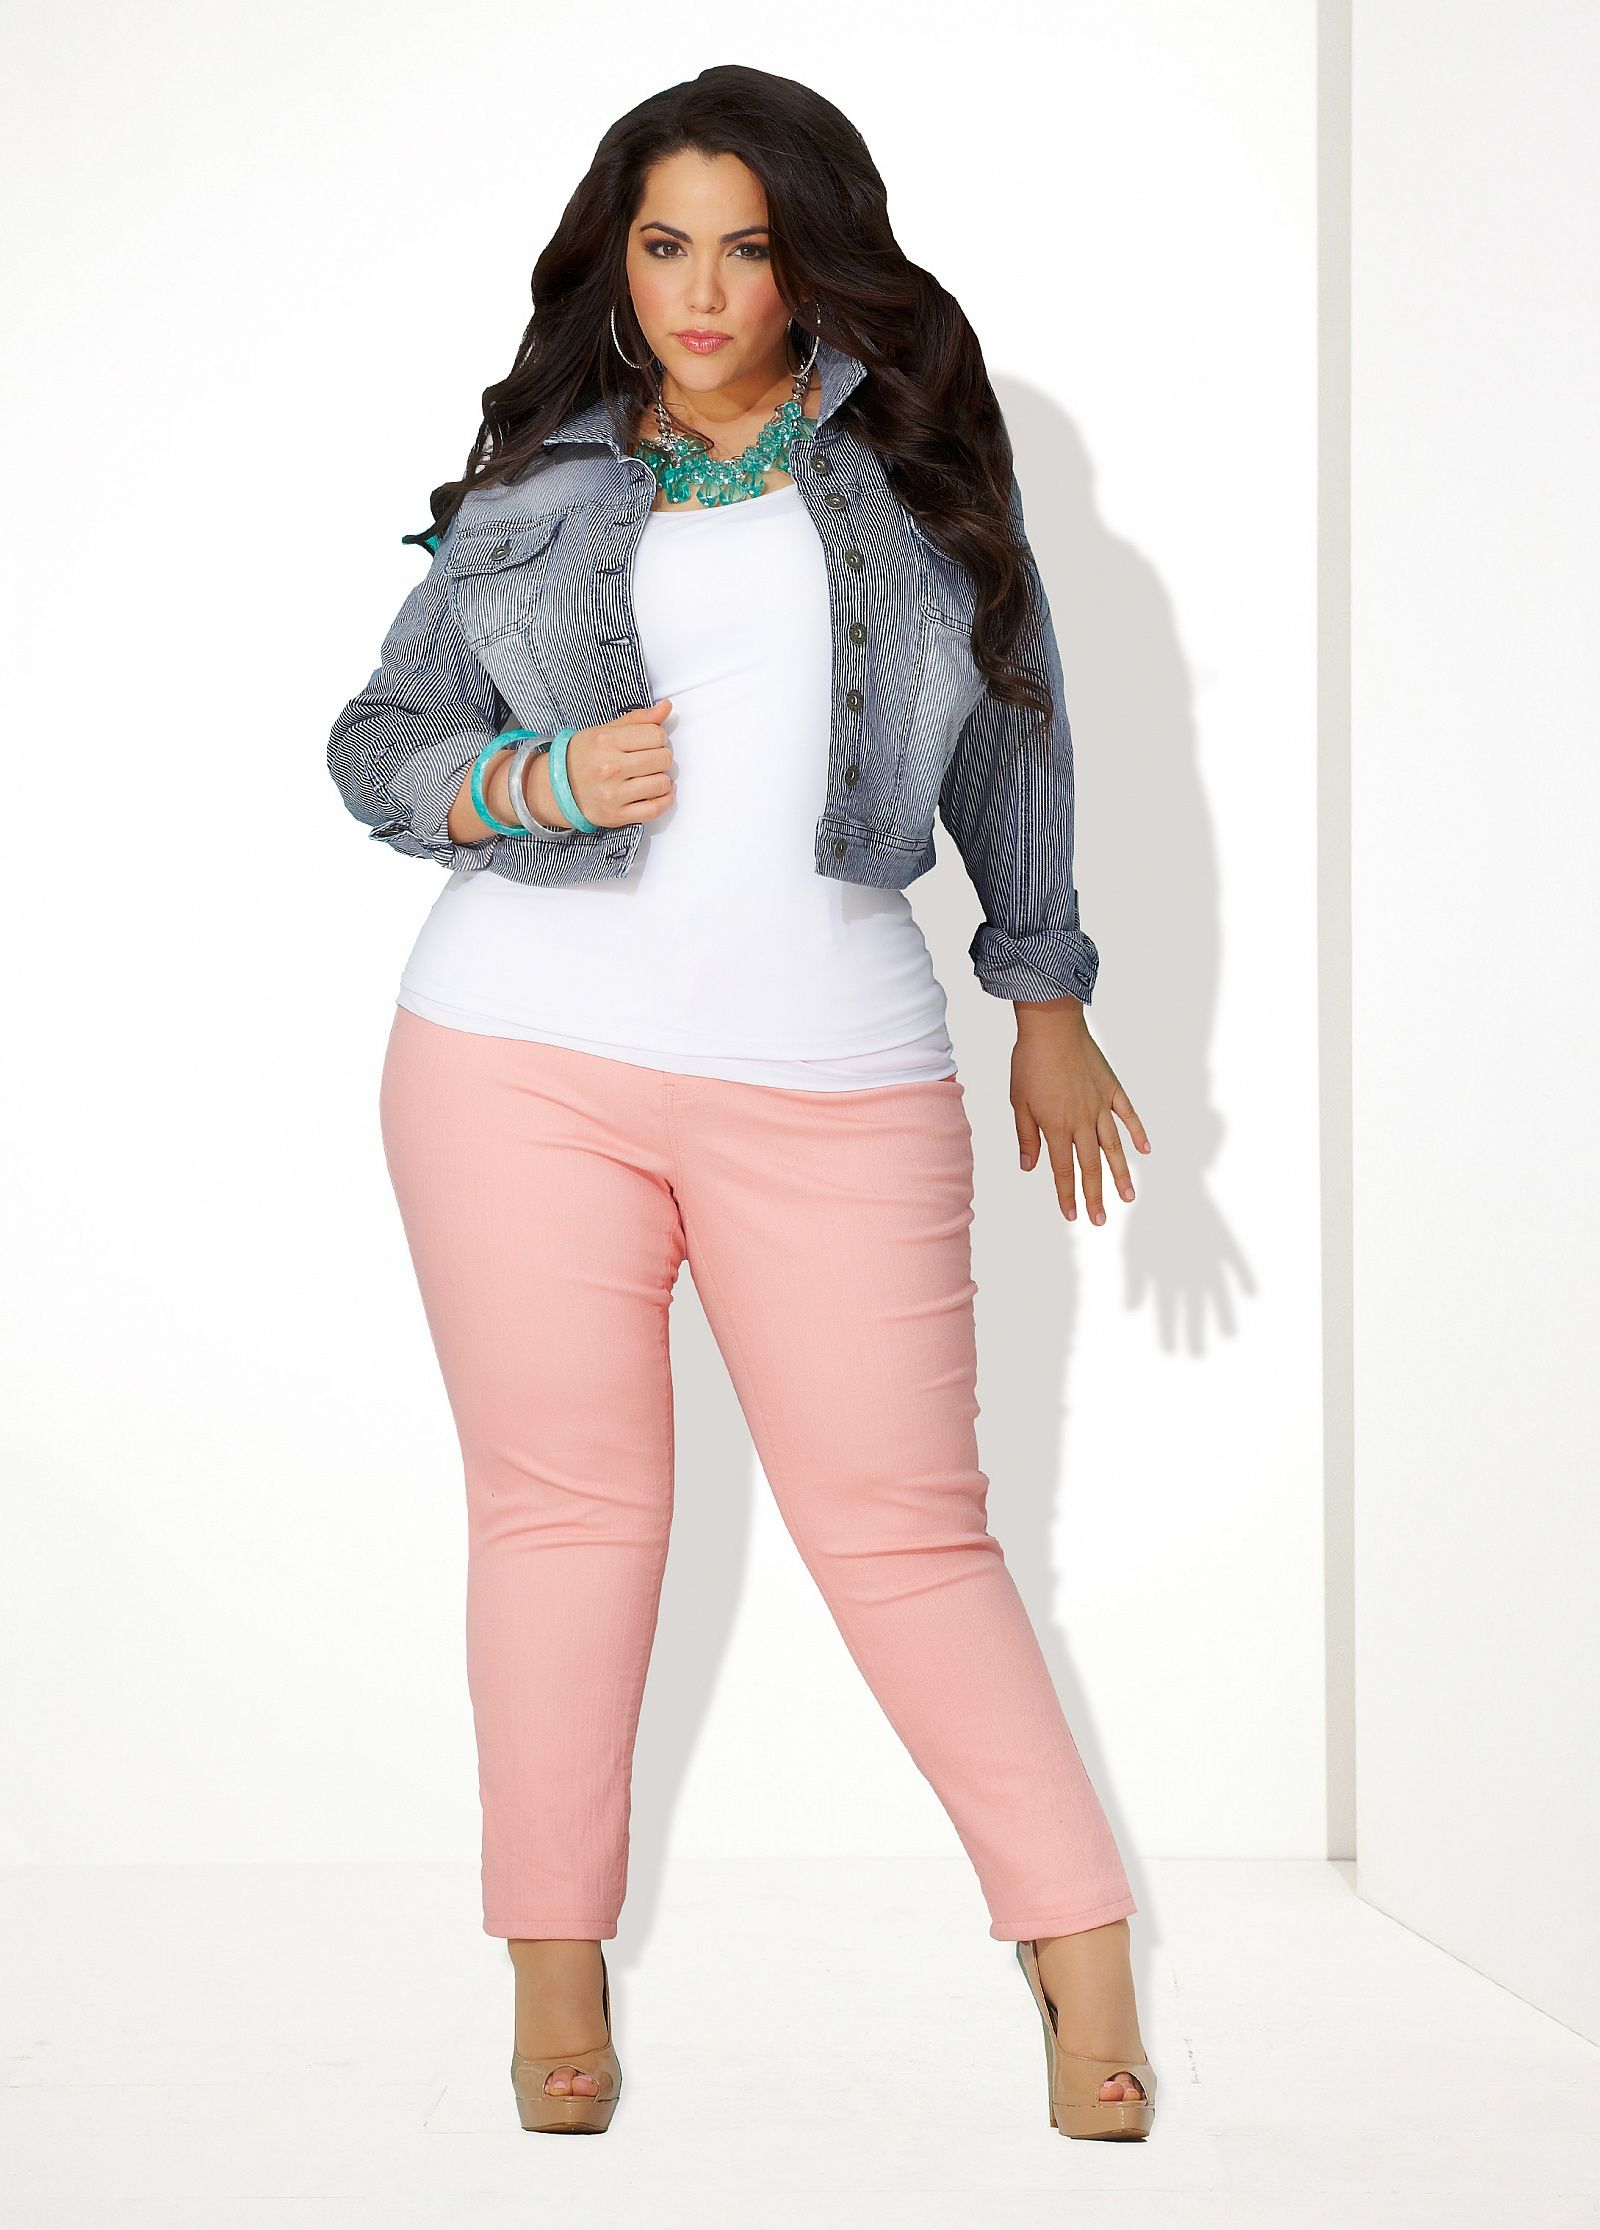 Ashley Stewart Plus Size Model Nicole Zepeda | She Wears It Well ...